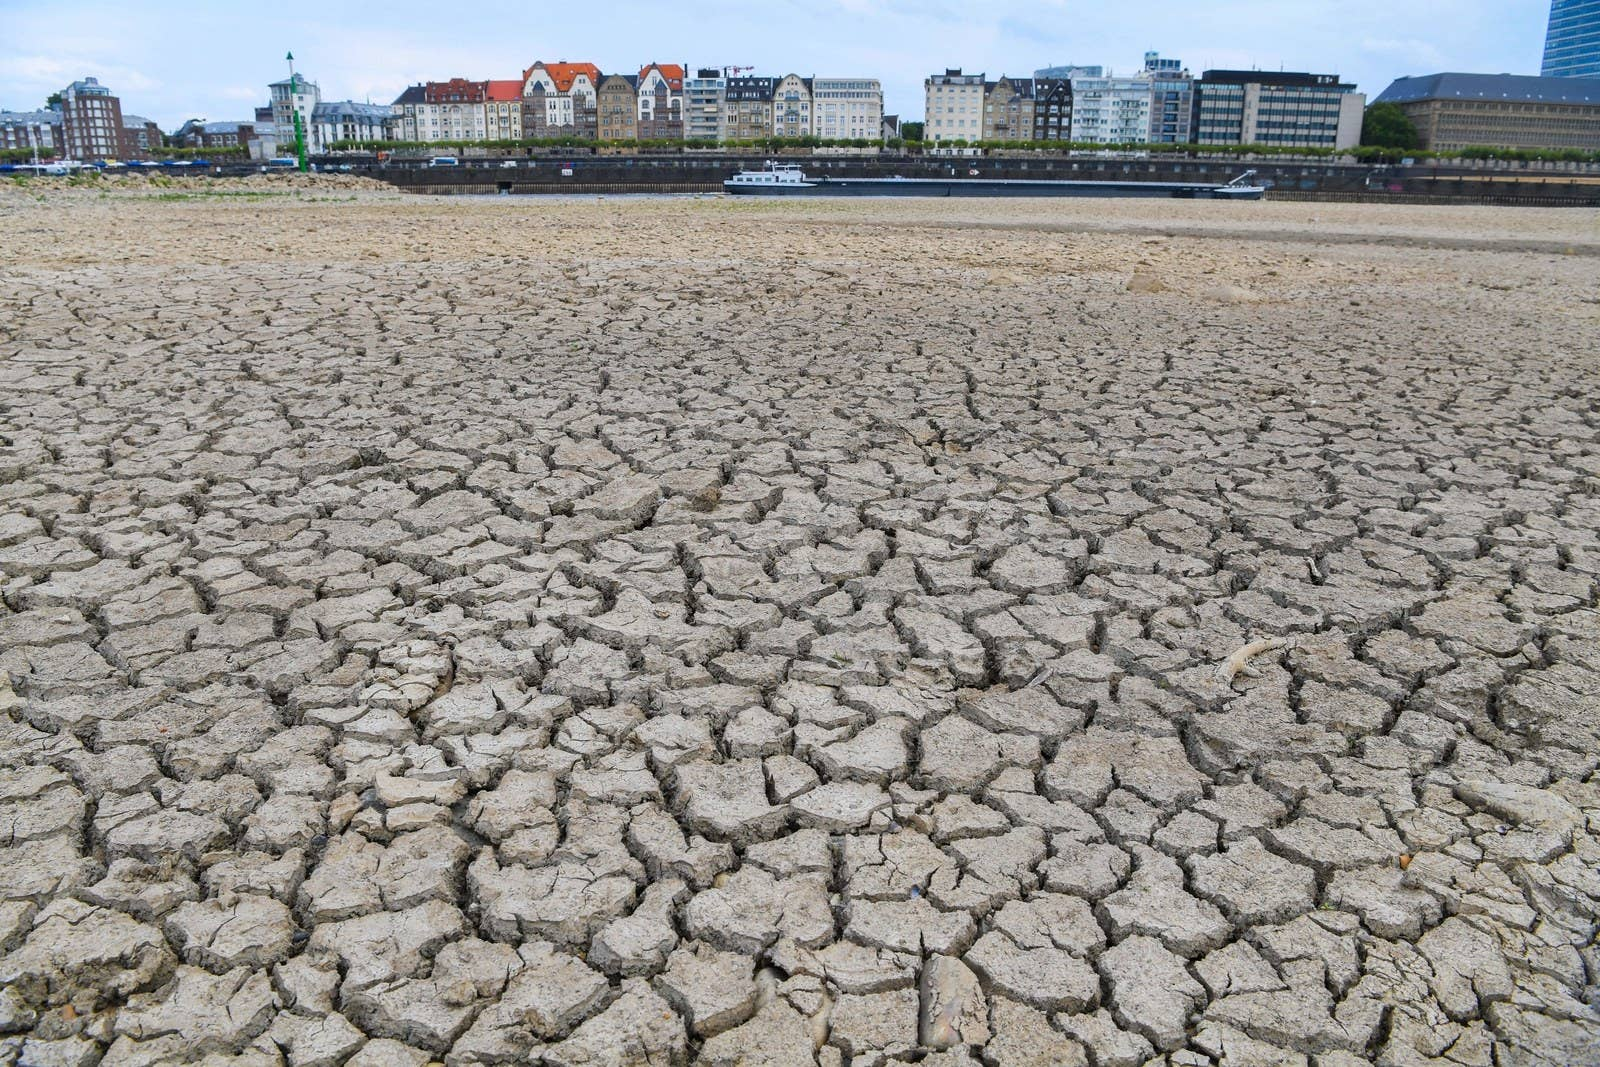 The riverbed of the Rhine dried out on Aug. 8 in Düsseldorf, Germany.